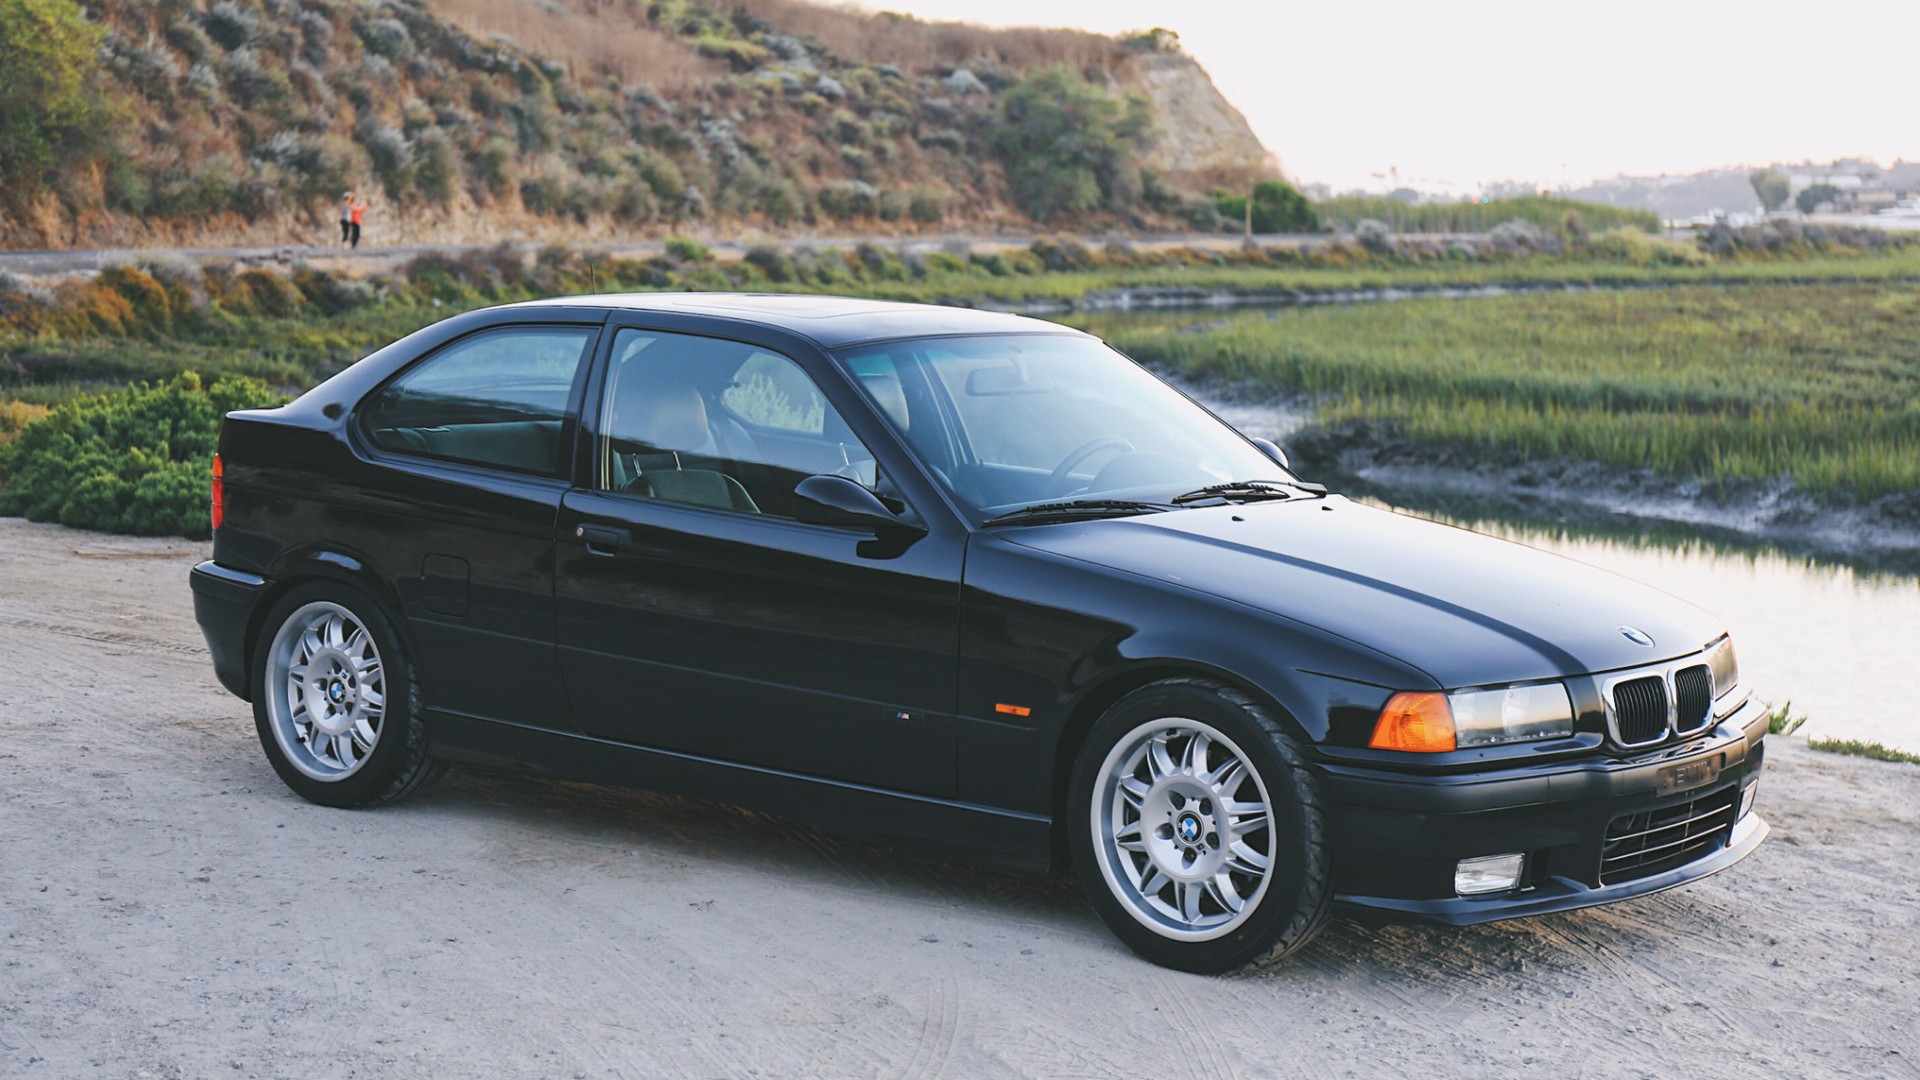 This S52 M3 Swapped BMW 318ti Is The Hot Hatch They Never Made